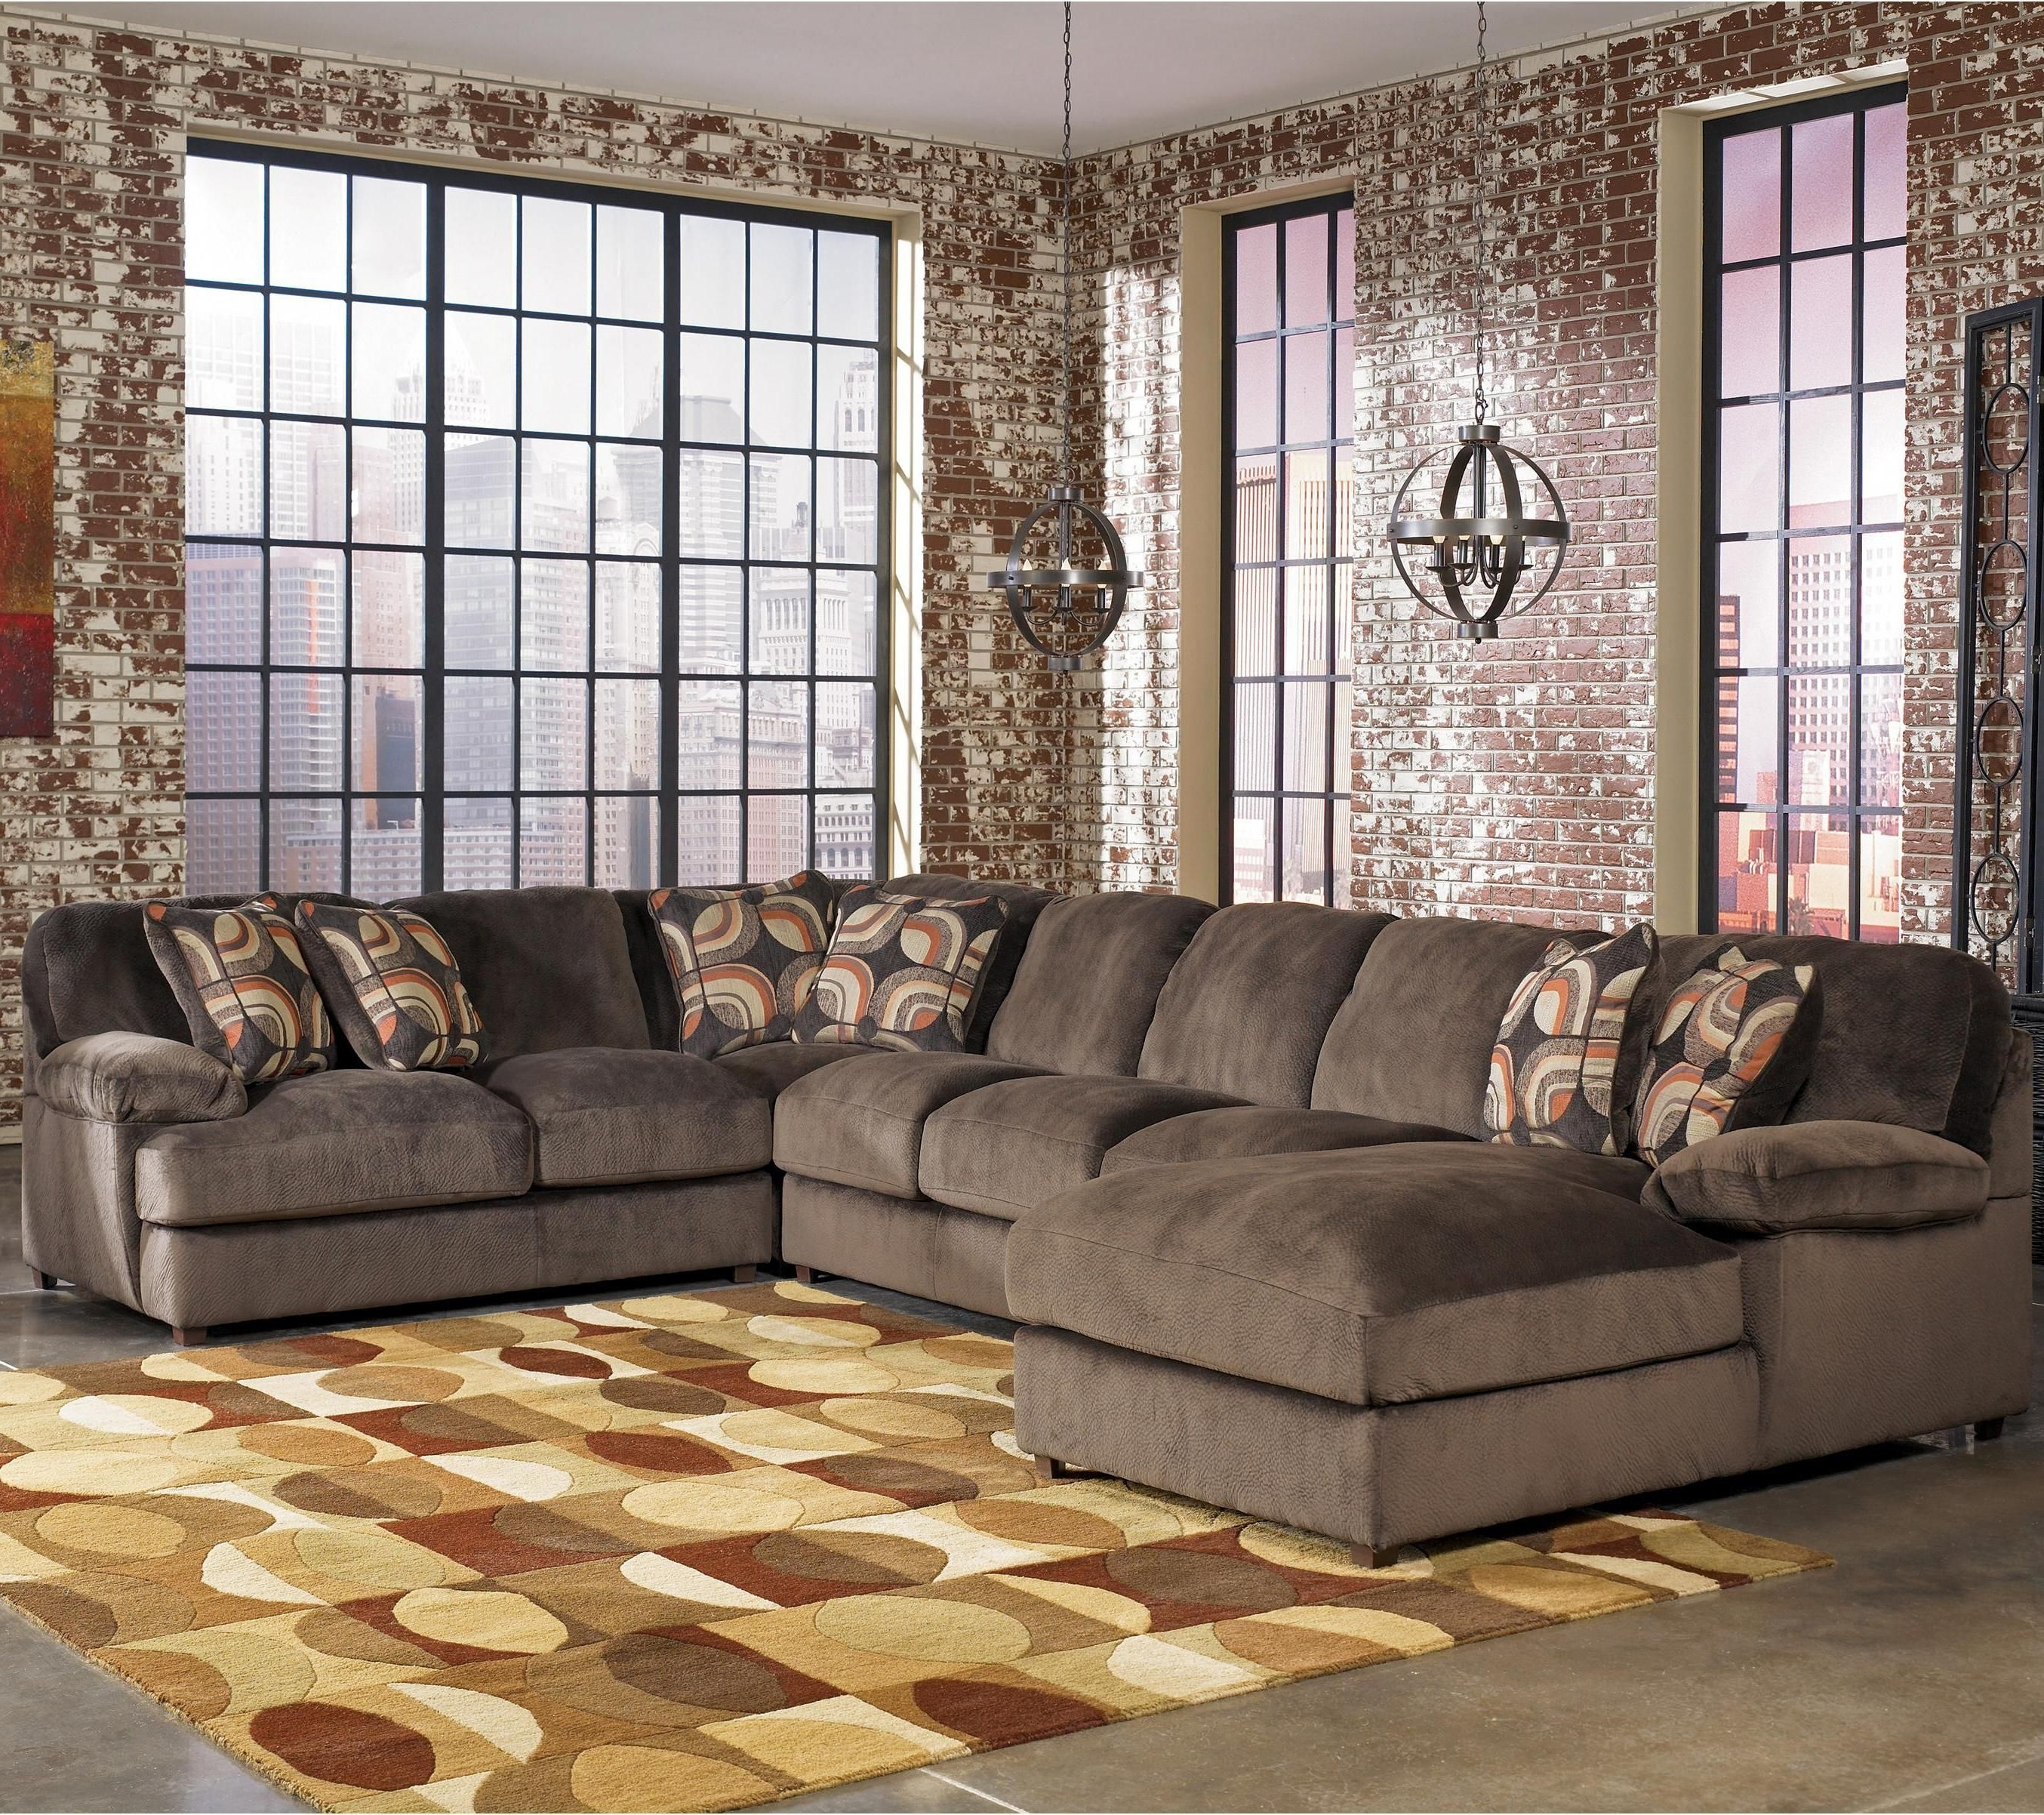 Flood Moultrie Throughout Killeen Tx Sectional Sofas (View 4 of 15)